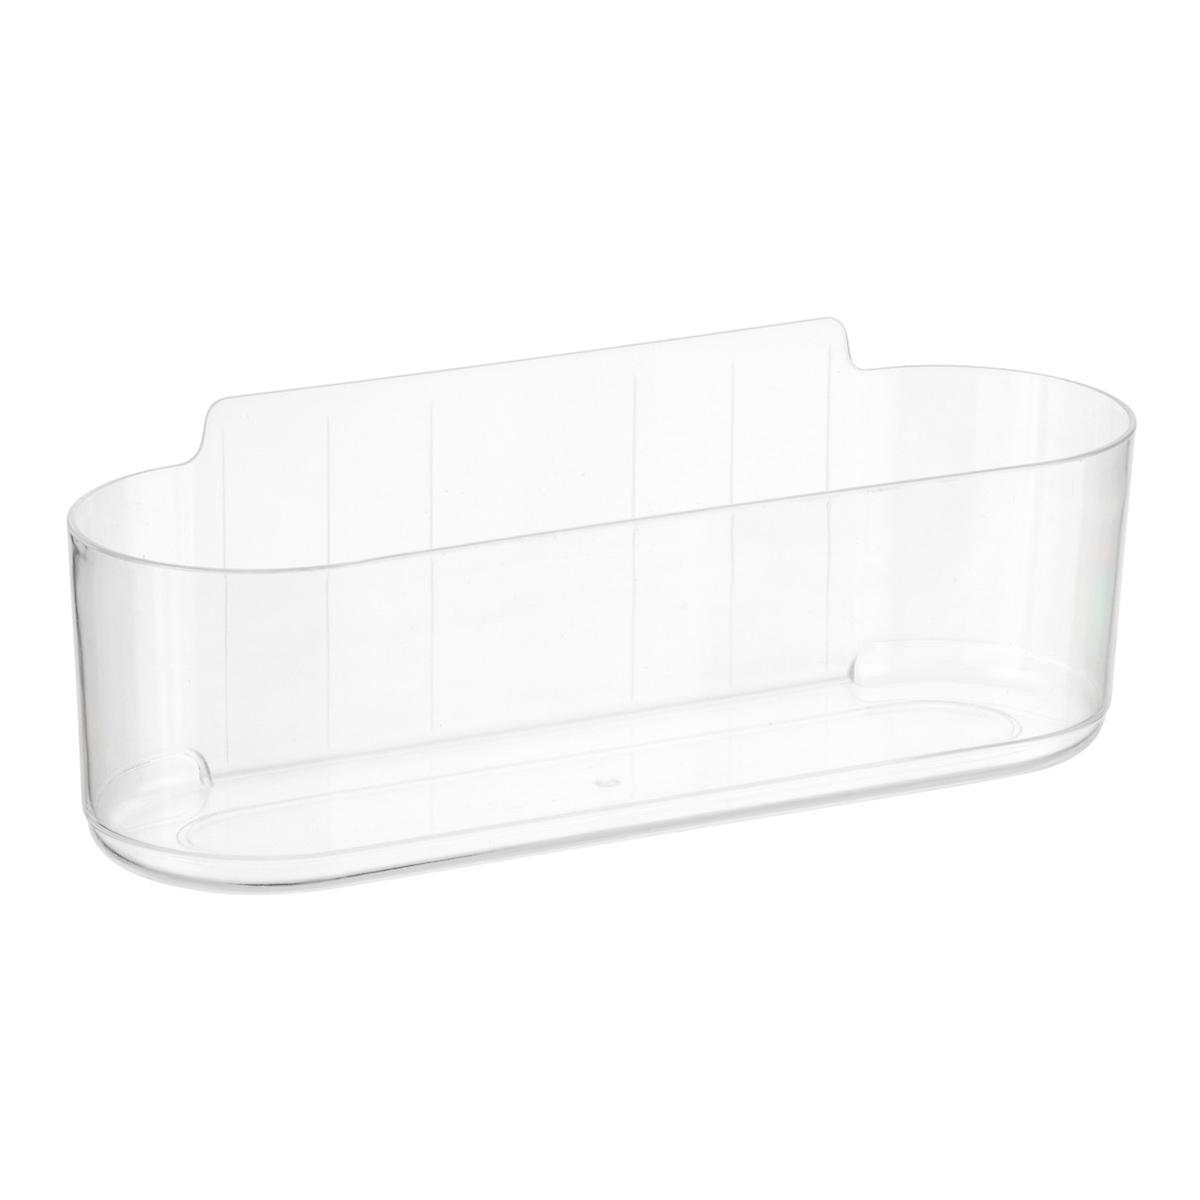 3m command clear caddies the container store for Clear bathroom containers